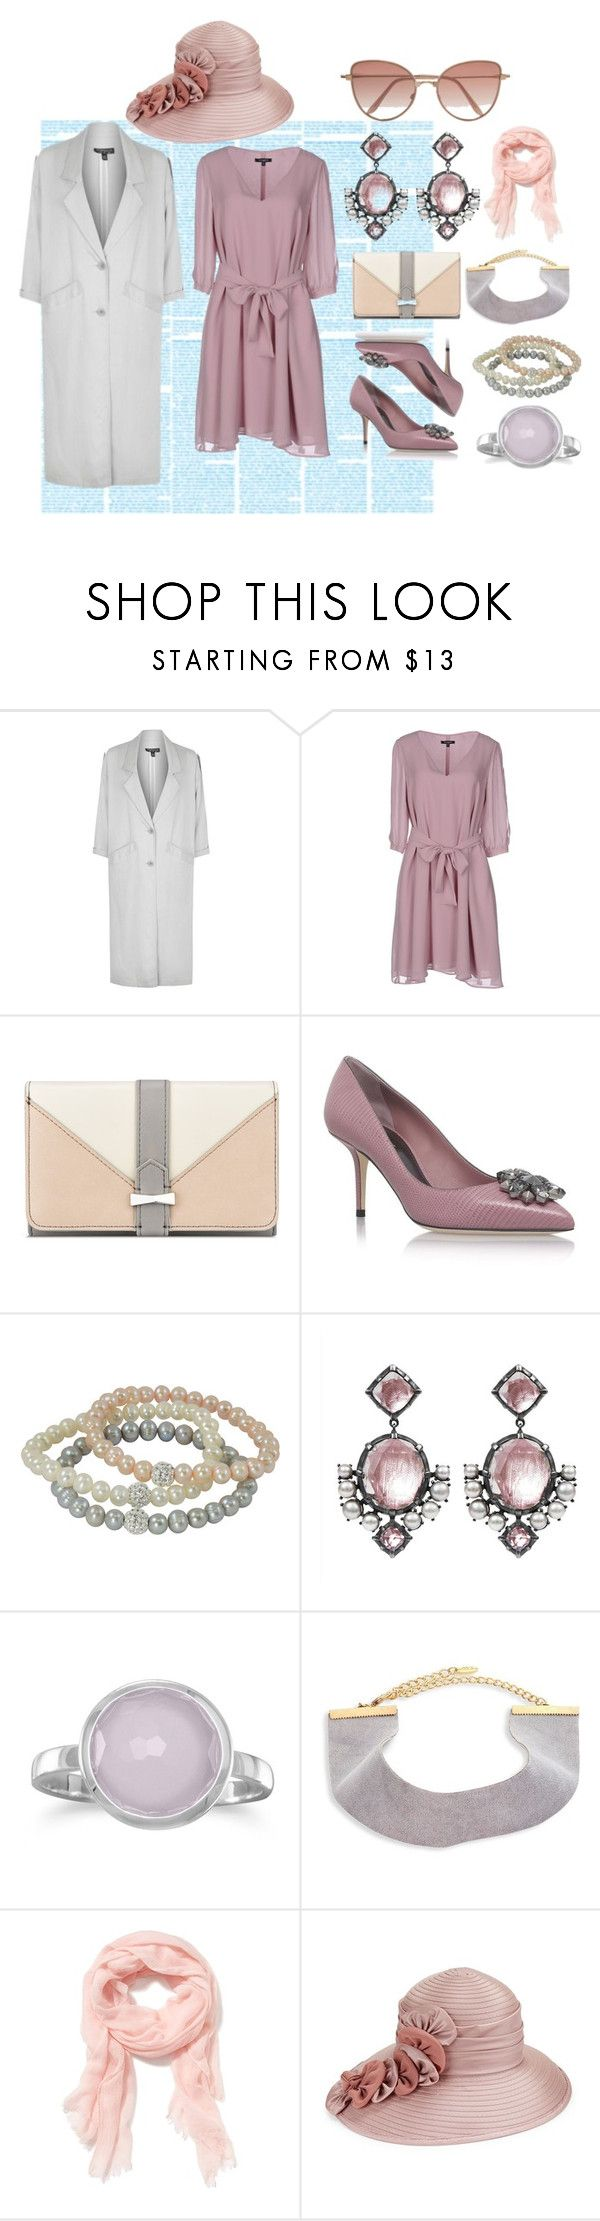 """""""Untitled #1390"""" by moestesoh ❤ liked on Polyvore featuring Topshop, Axara, Nine West, Dolce&Gabbana, Larkspur & Hawk, Ettika, Old Navy, Giovannio and Cutler and Gross"""